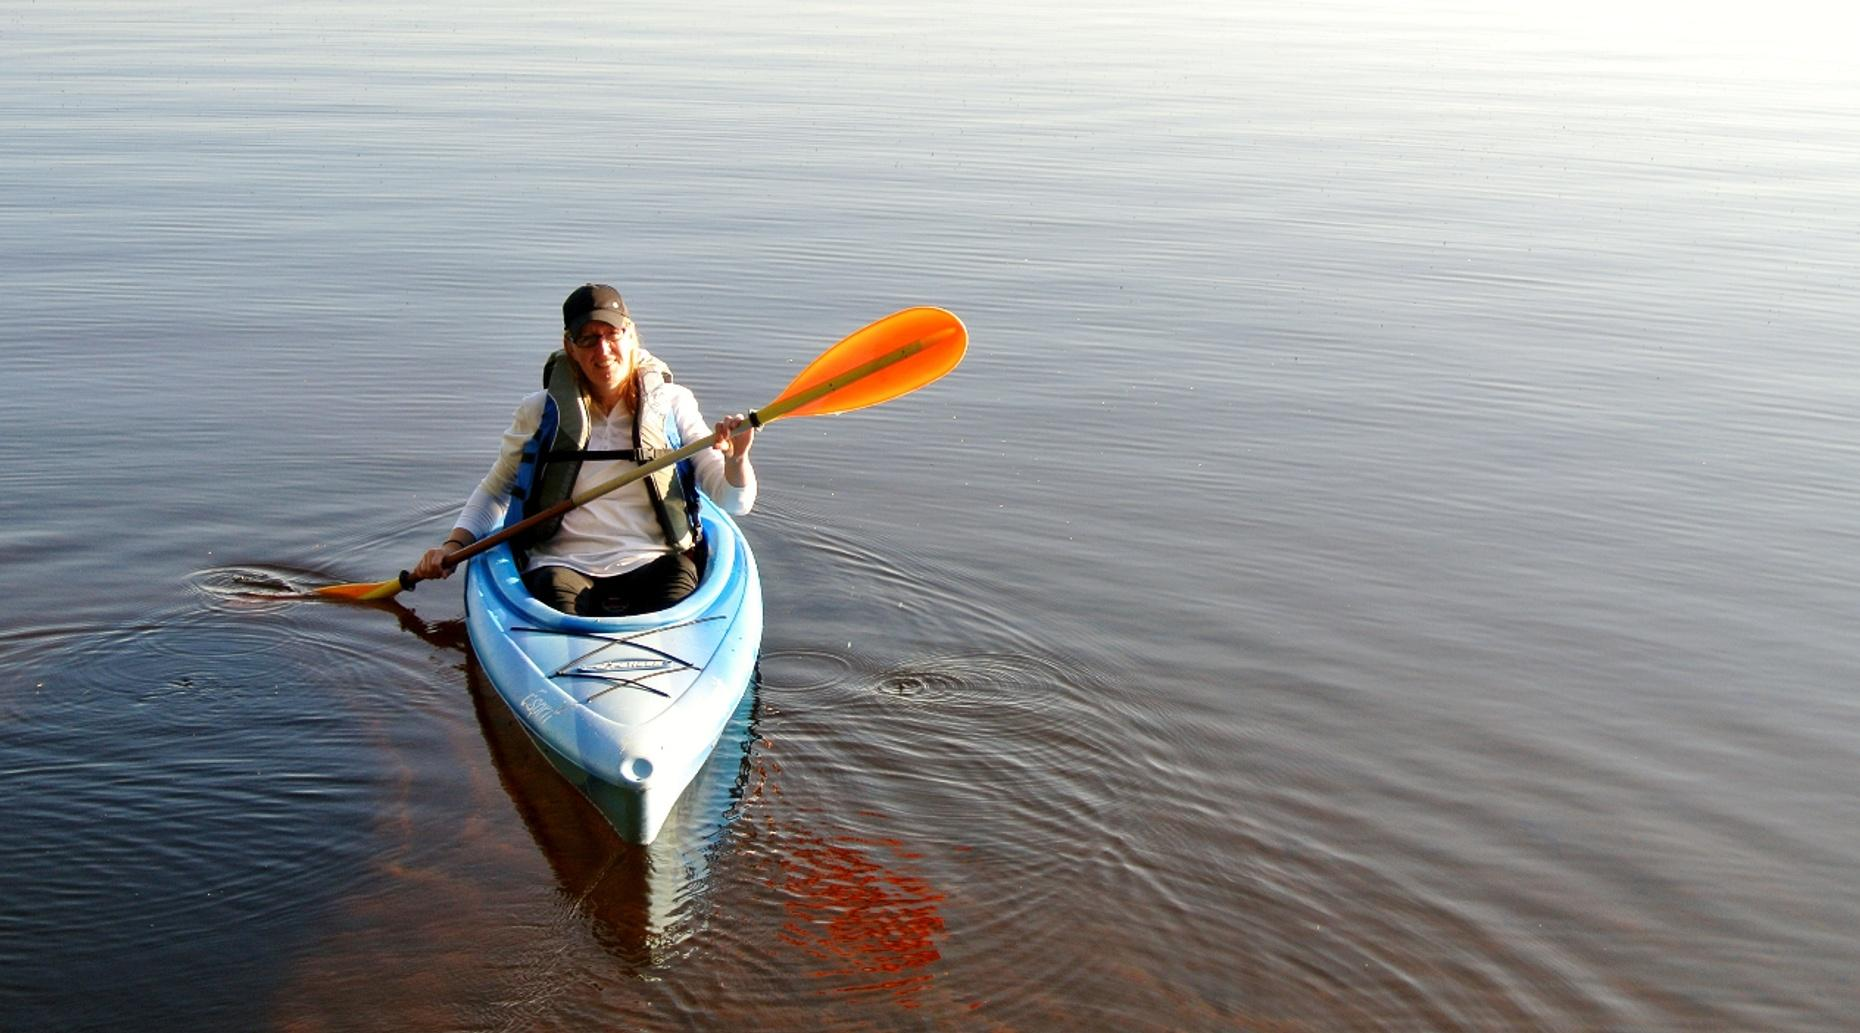 2-Hour Guided Kayak Tour on the Connetquot River